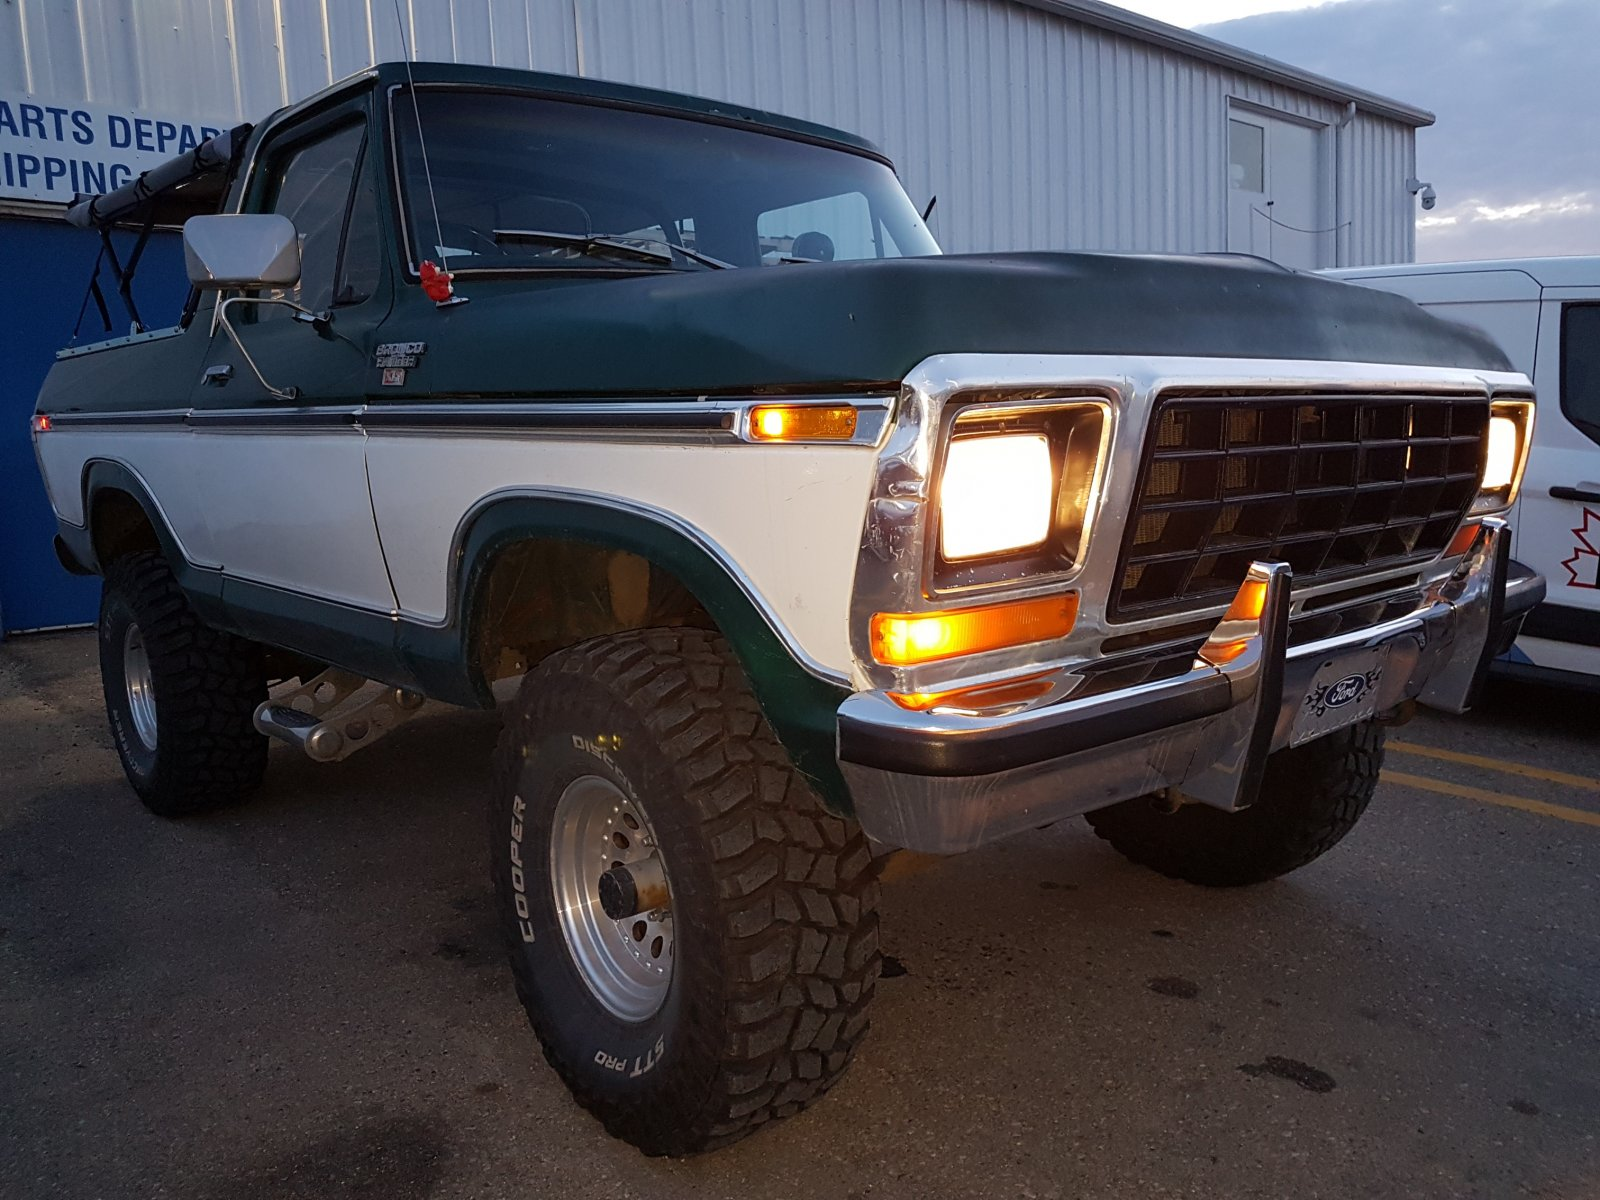 1979 Ford Bronco With a 400 Engine 9.jpg